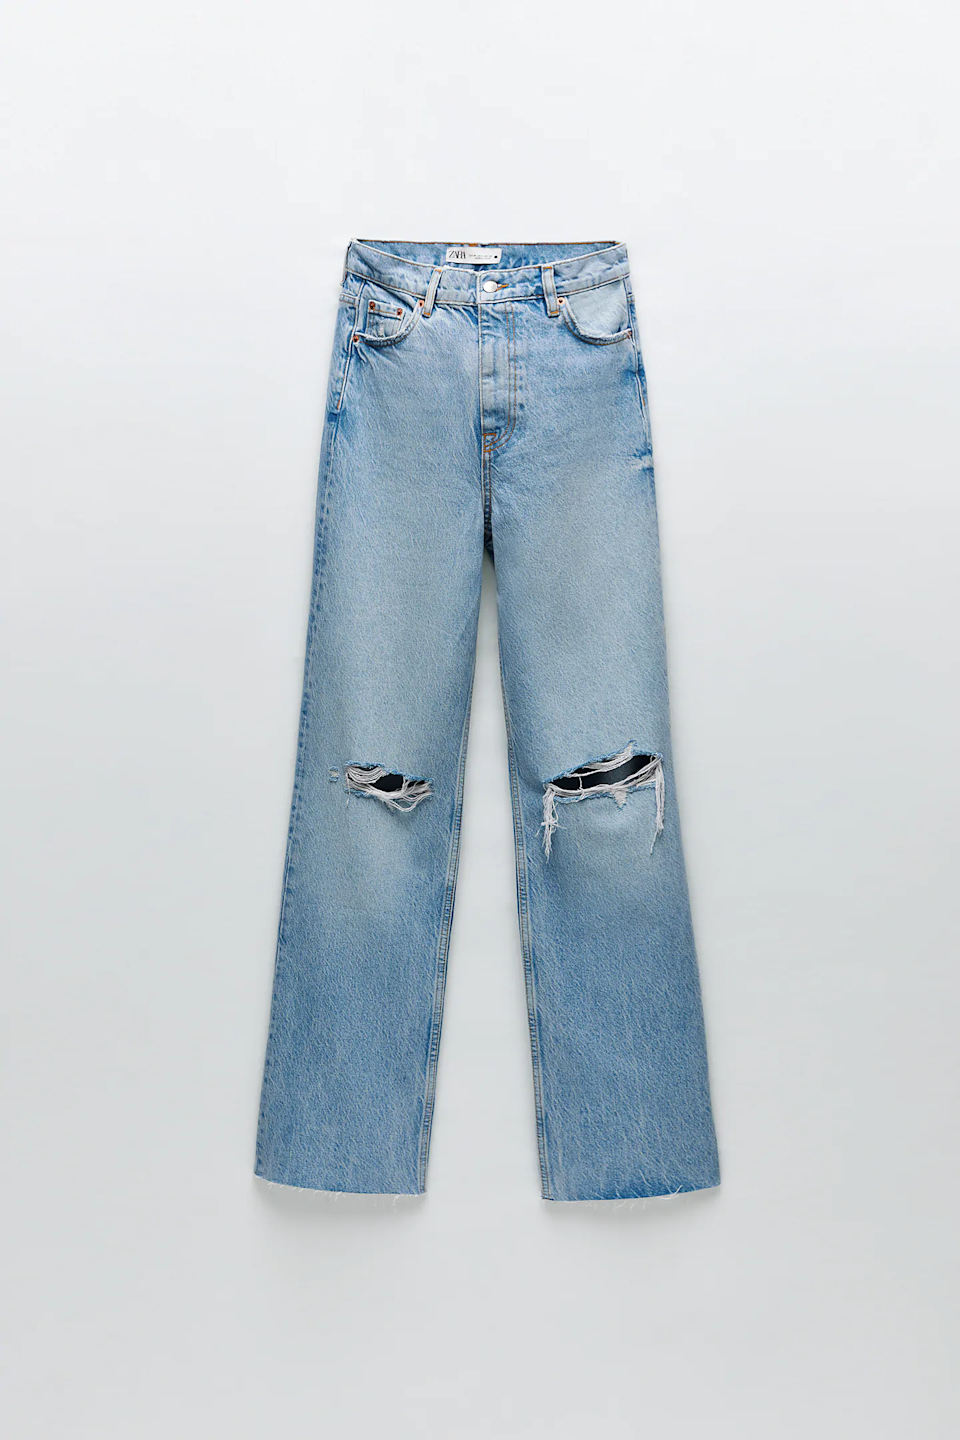 "<br><br><strong>Zara</strong> '90s Full Length Jeans, $, available at <a href=""https://go.skimresources.com/?id=30283X879131&url=https%3A%2F%2Fwww.zara.com%2Fus%2Fen%2Fzw-premium-%25E2%2580%259890s-full-length-jeans-in-harmony-blue-p06840250.html%3Fv1%3D69847991%26v2%3D1549287"" rel=""nofollow noopener"" target=""_blank"" data-ylk=""slk:Zara"" class=""link rapid-noclick-resp"">Zara</a>"